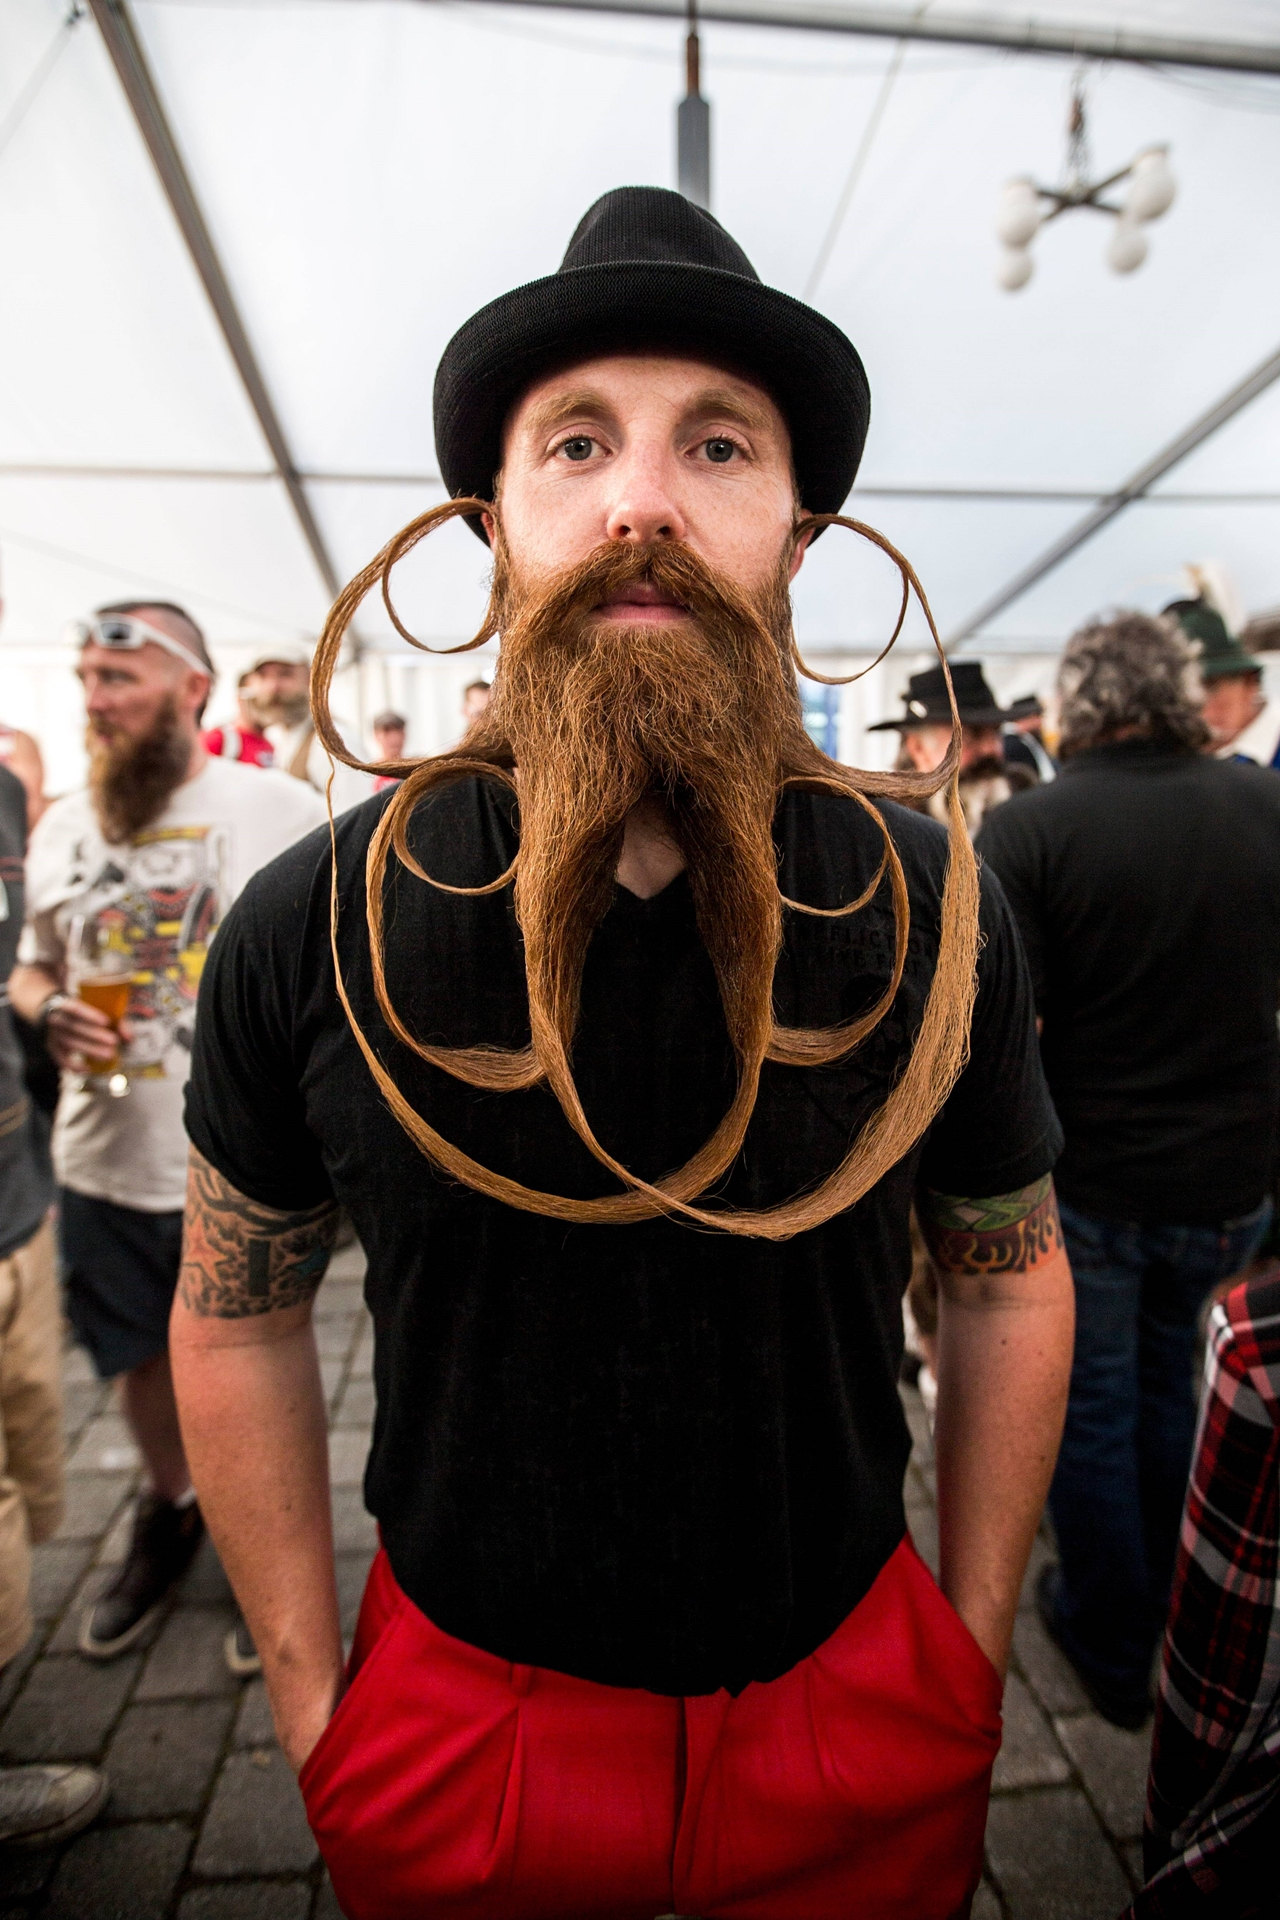 The world championship beard and mustache 18